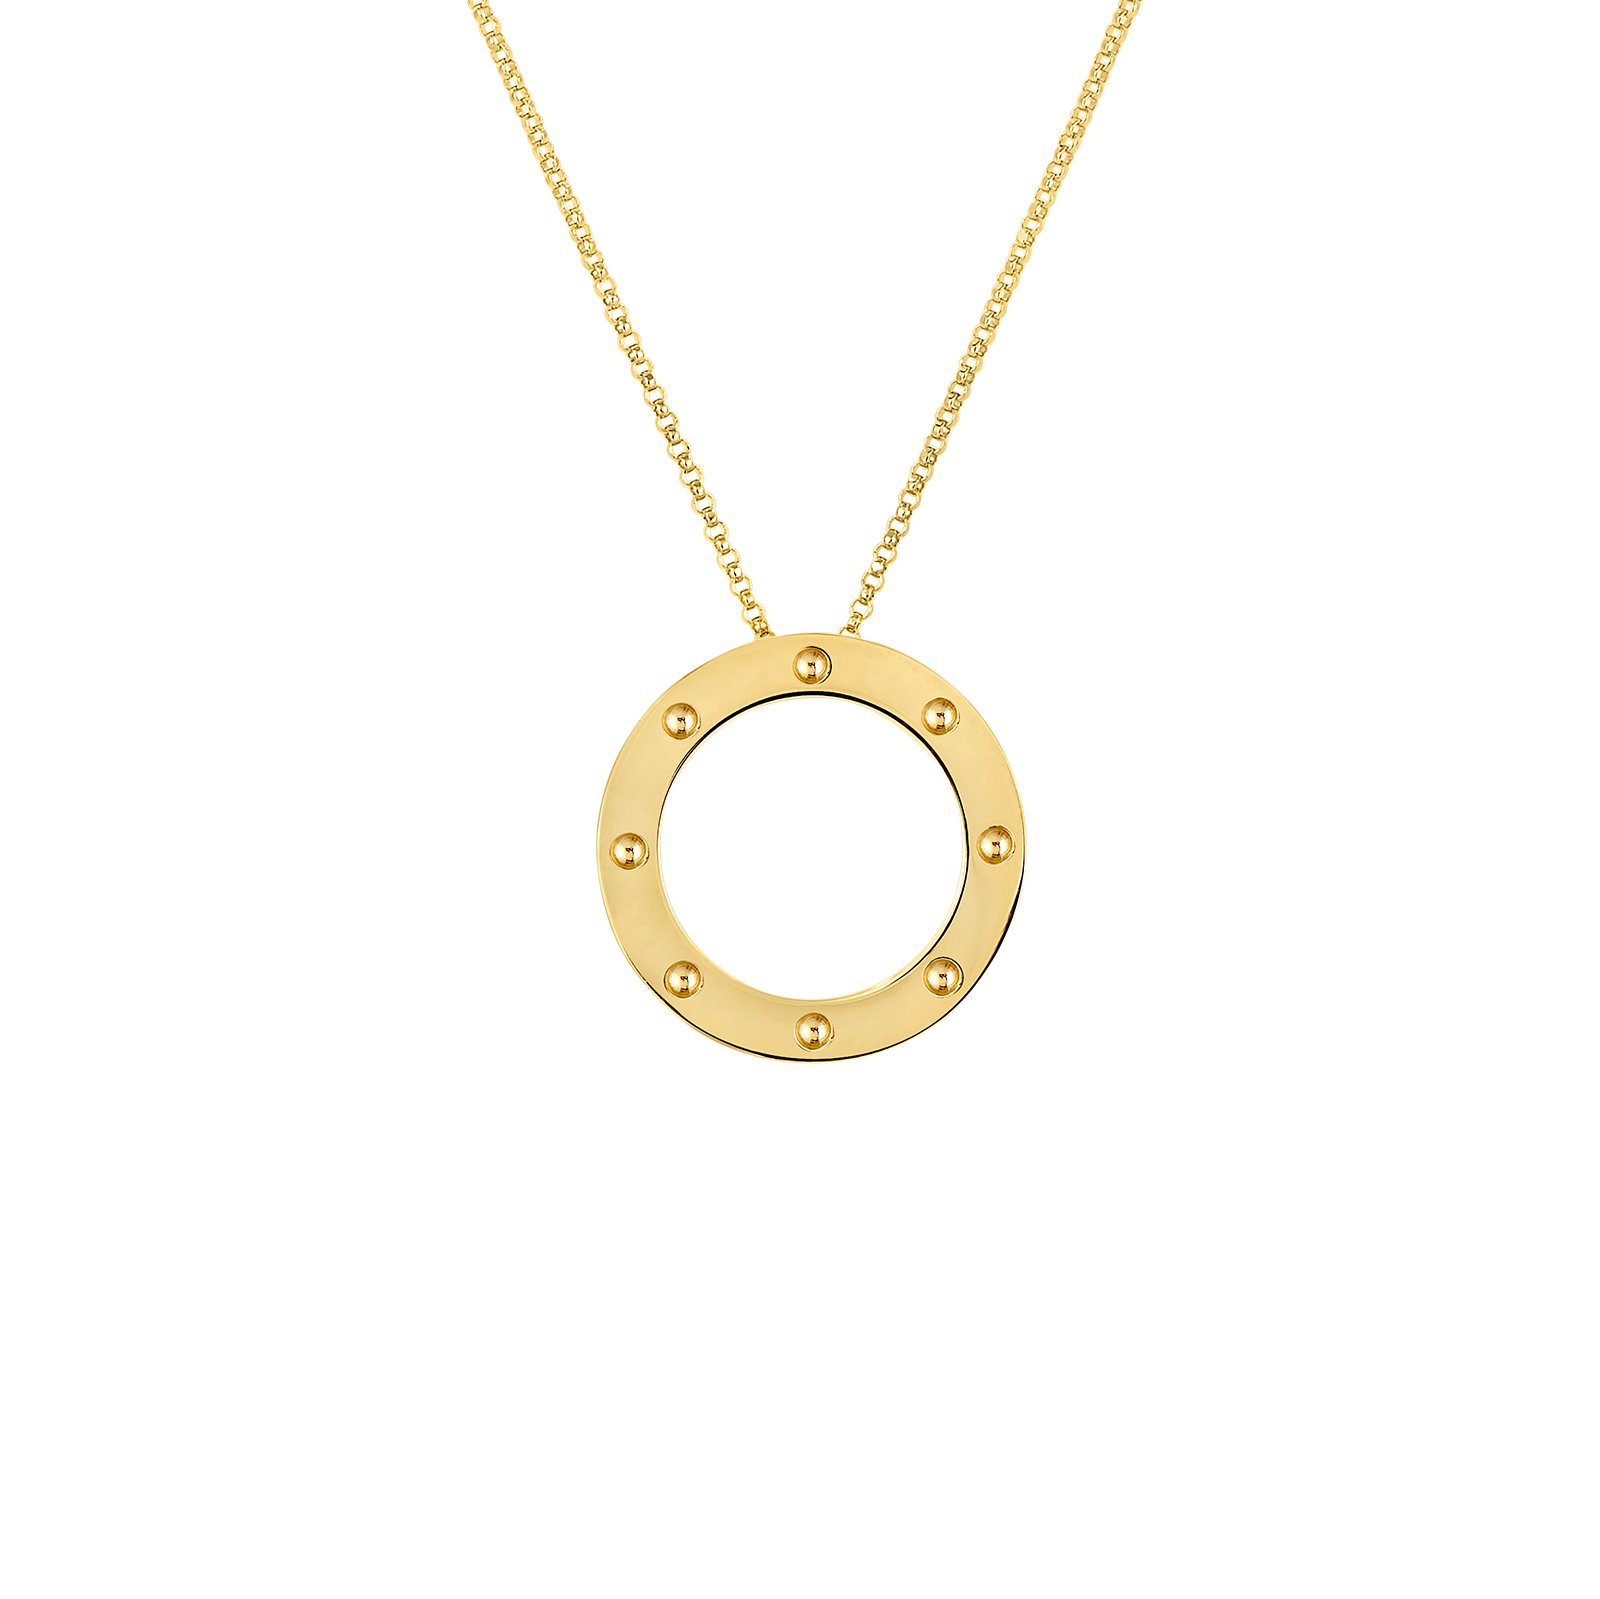 Necklace clipart tier. Gold circle pendant shining